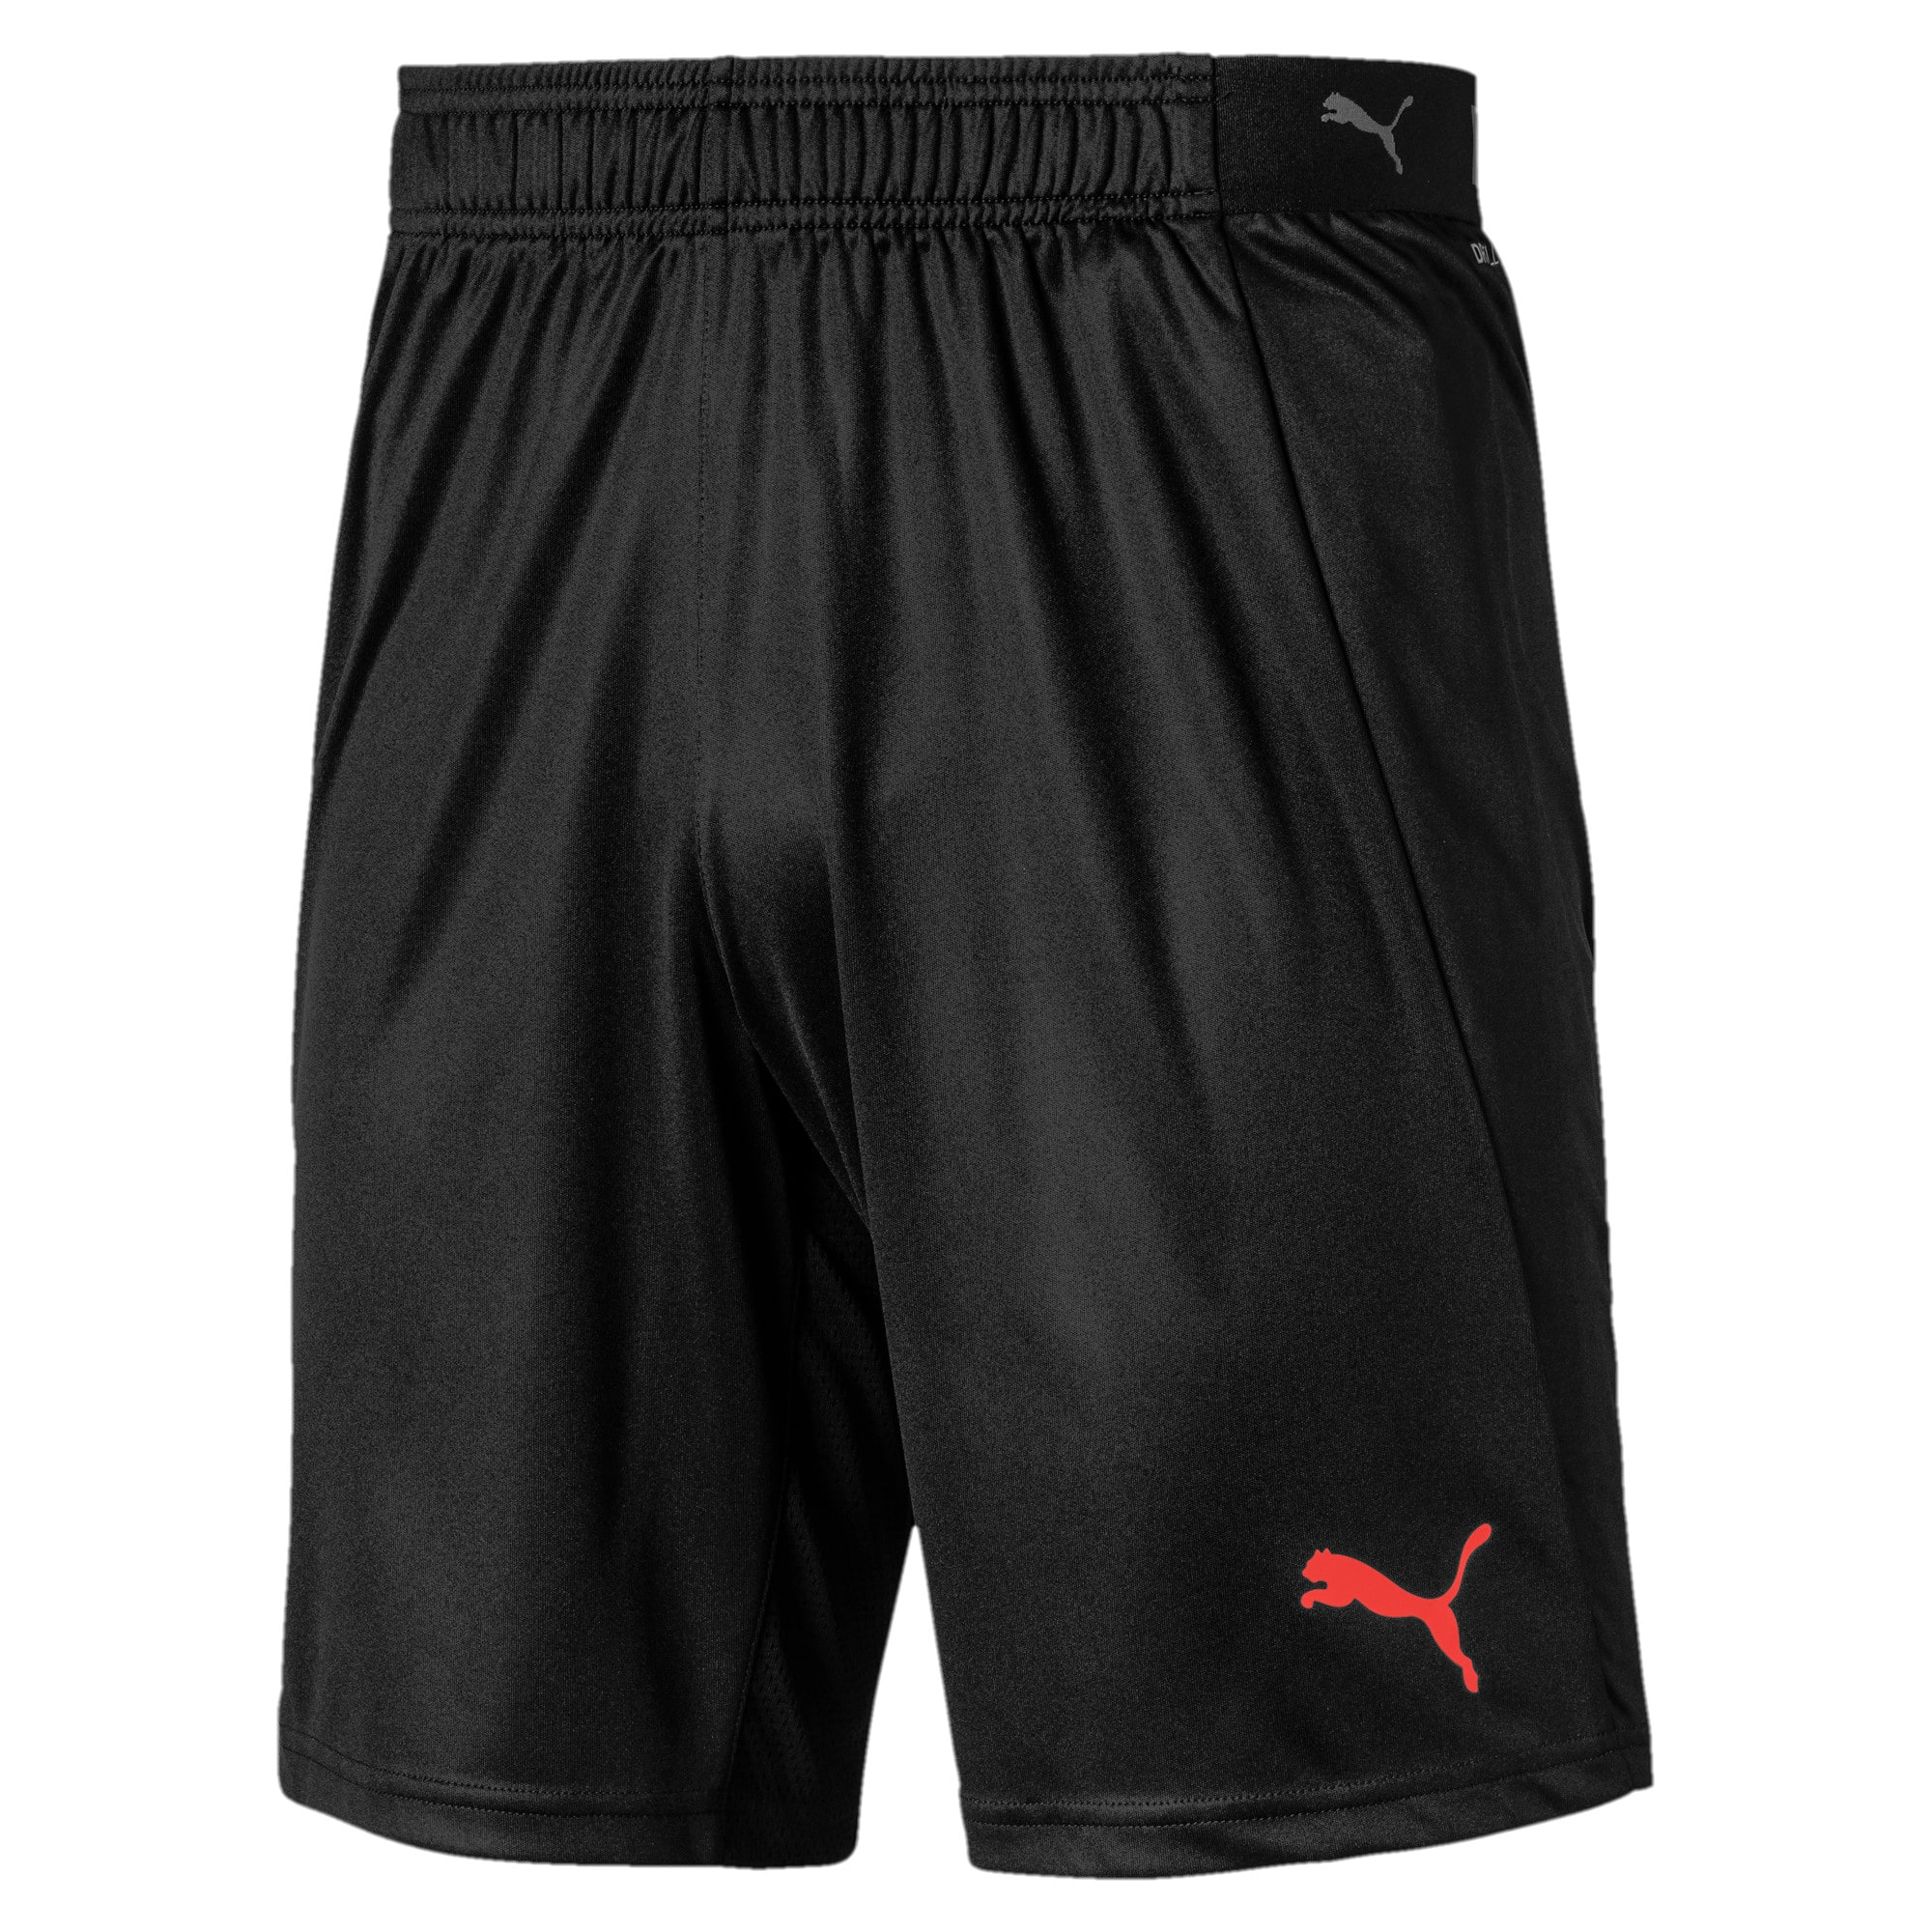 Thumbnail 4 of Men's Shorts, Puma Black, medium